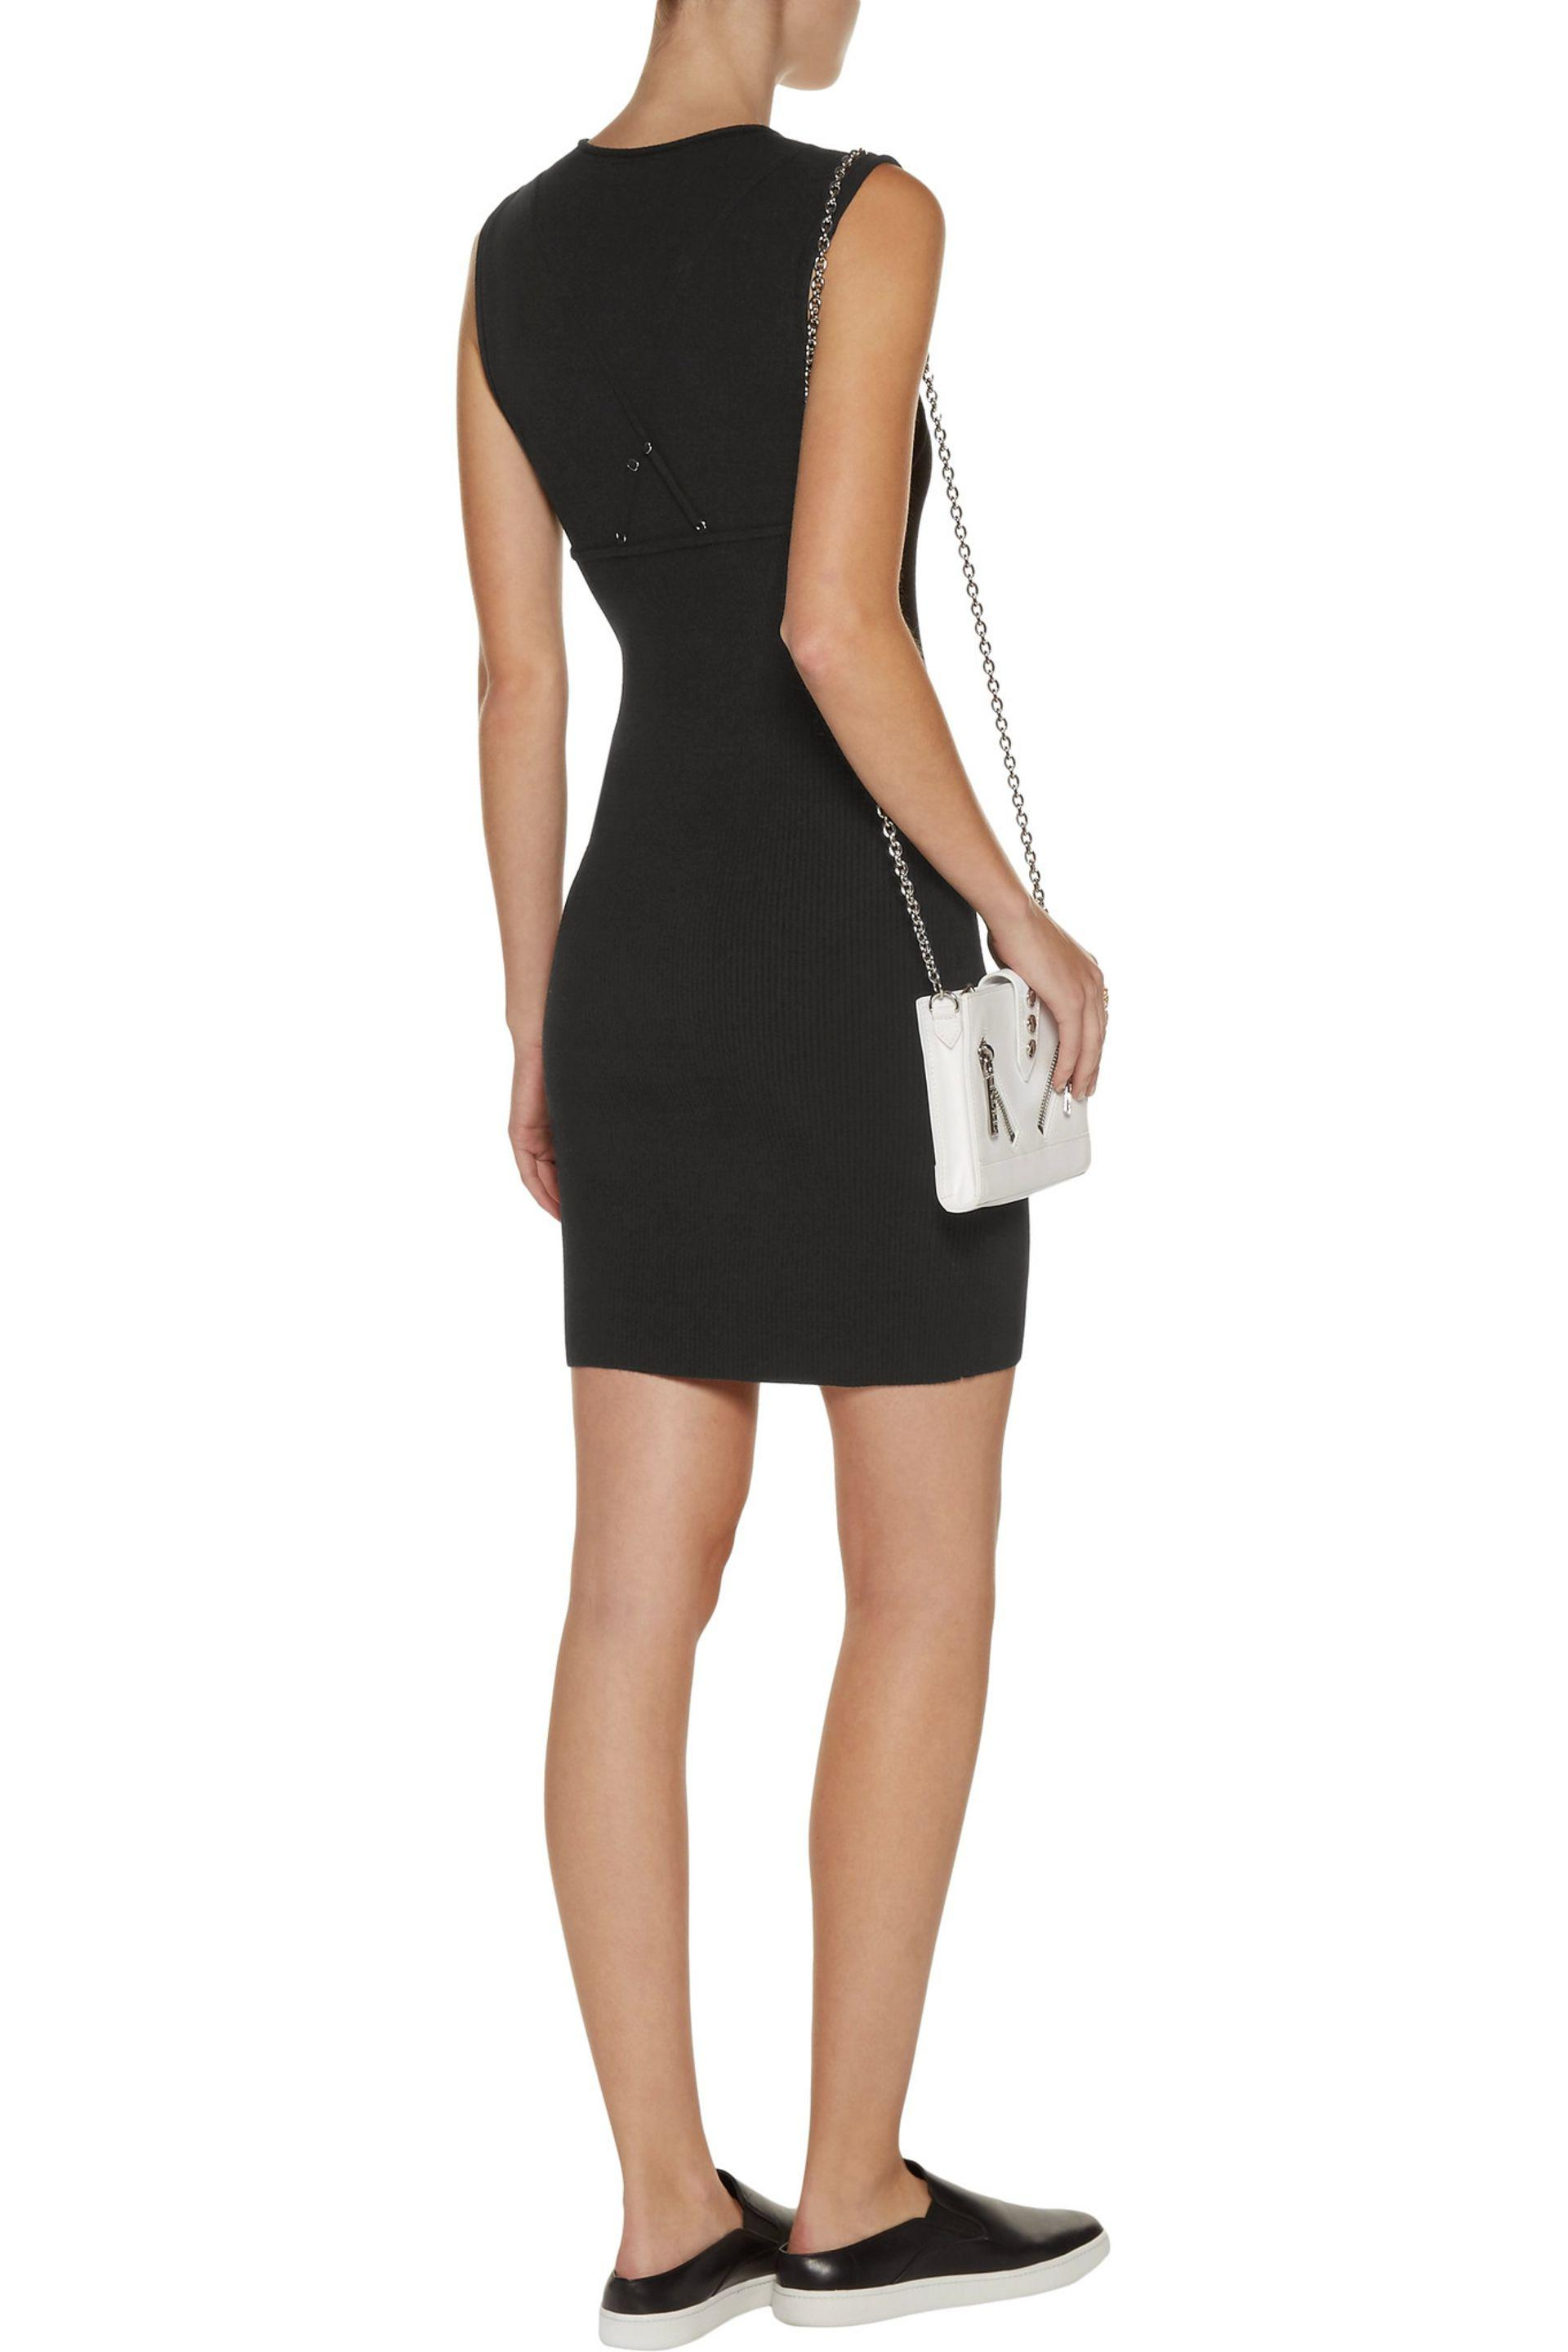 Outlet Best Store To Get A.l.c. Woman Aviana Layer-effect Stretch And Ribbed-knit Mini Dress Black Size L A.L.C. Looking For Sale Online wIRKxE2wkA